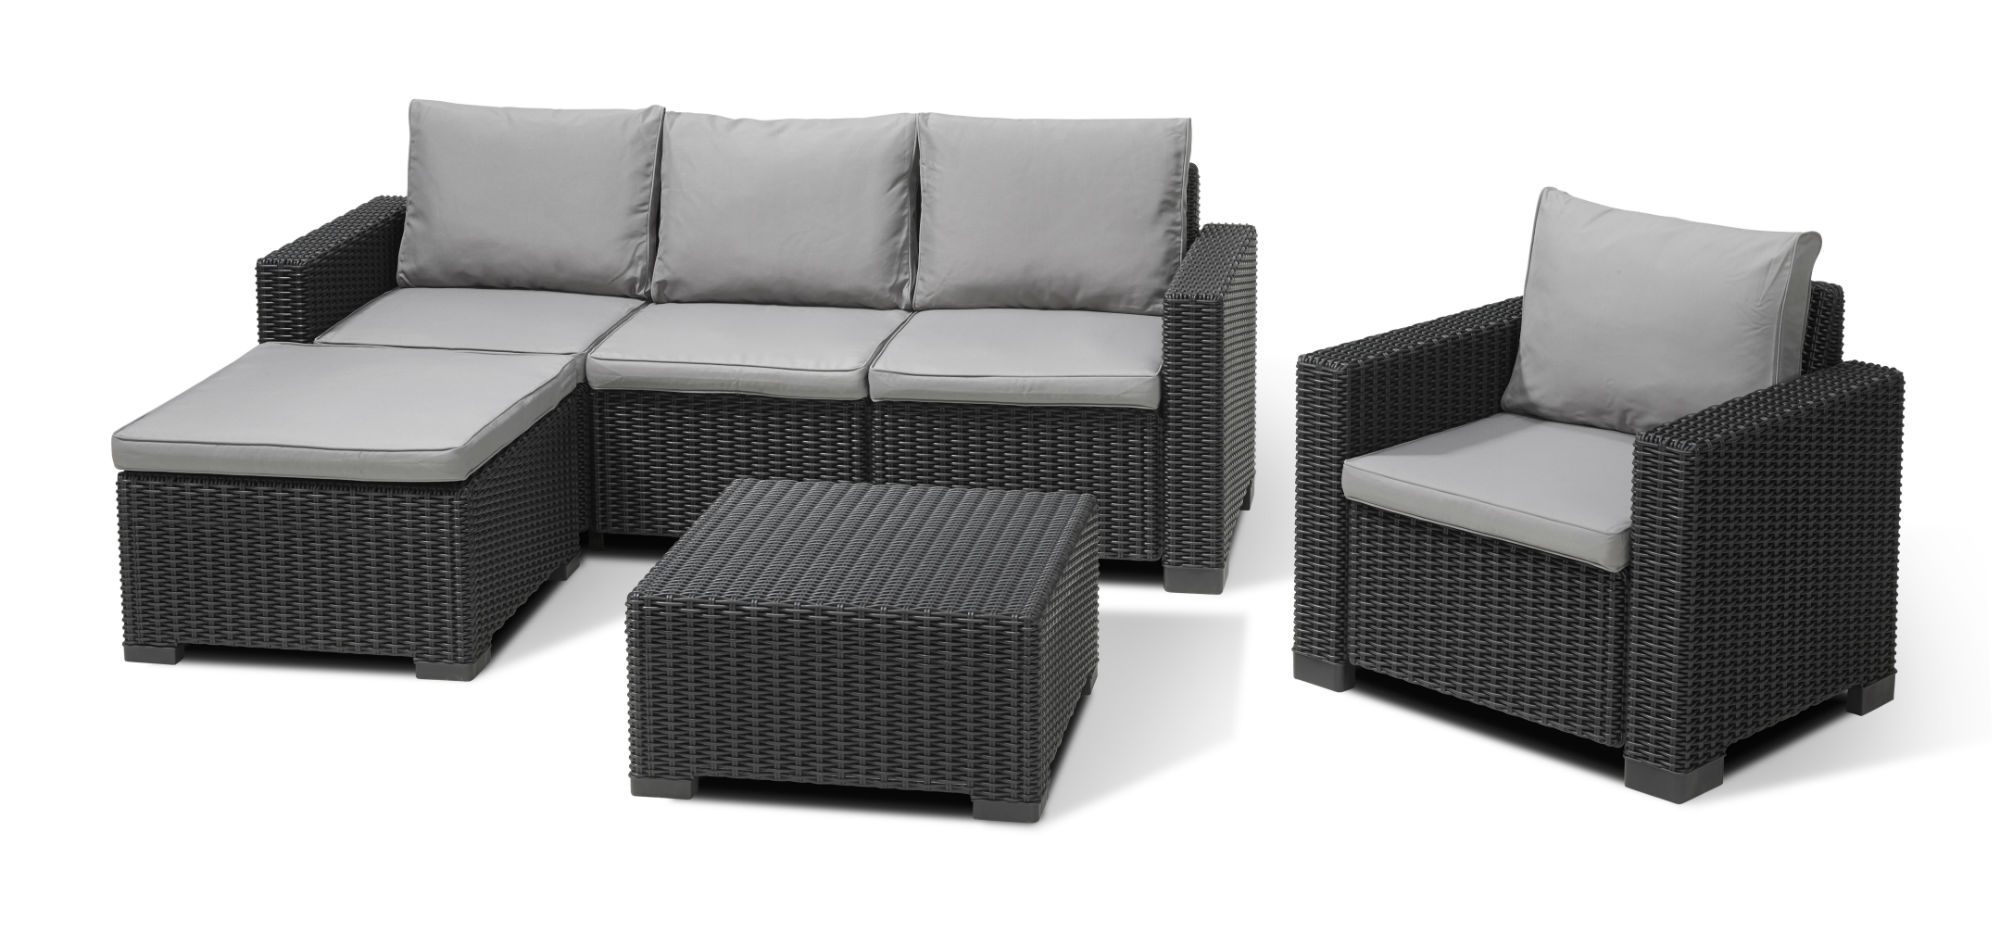 ALLIBERT Moorea lounge set graphite - Allibert